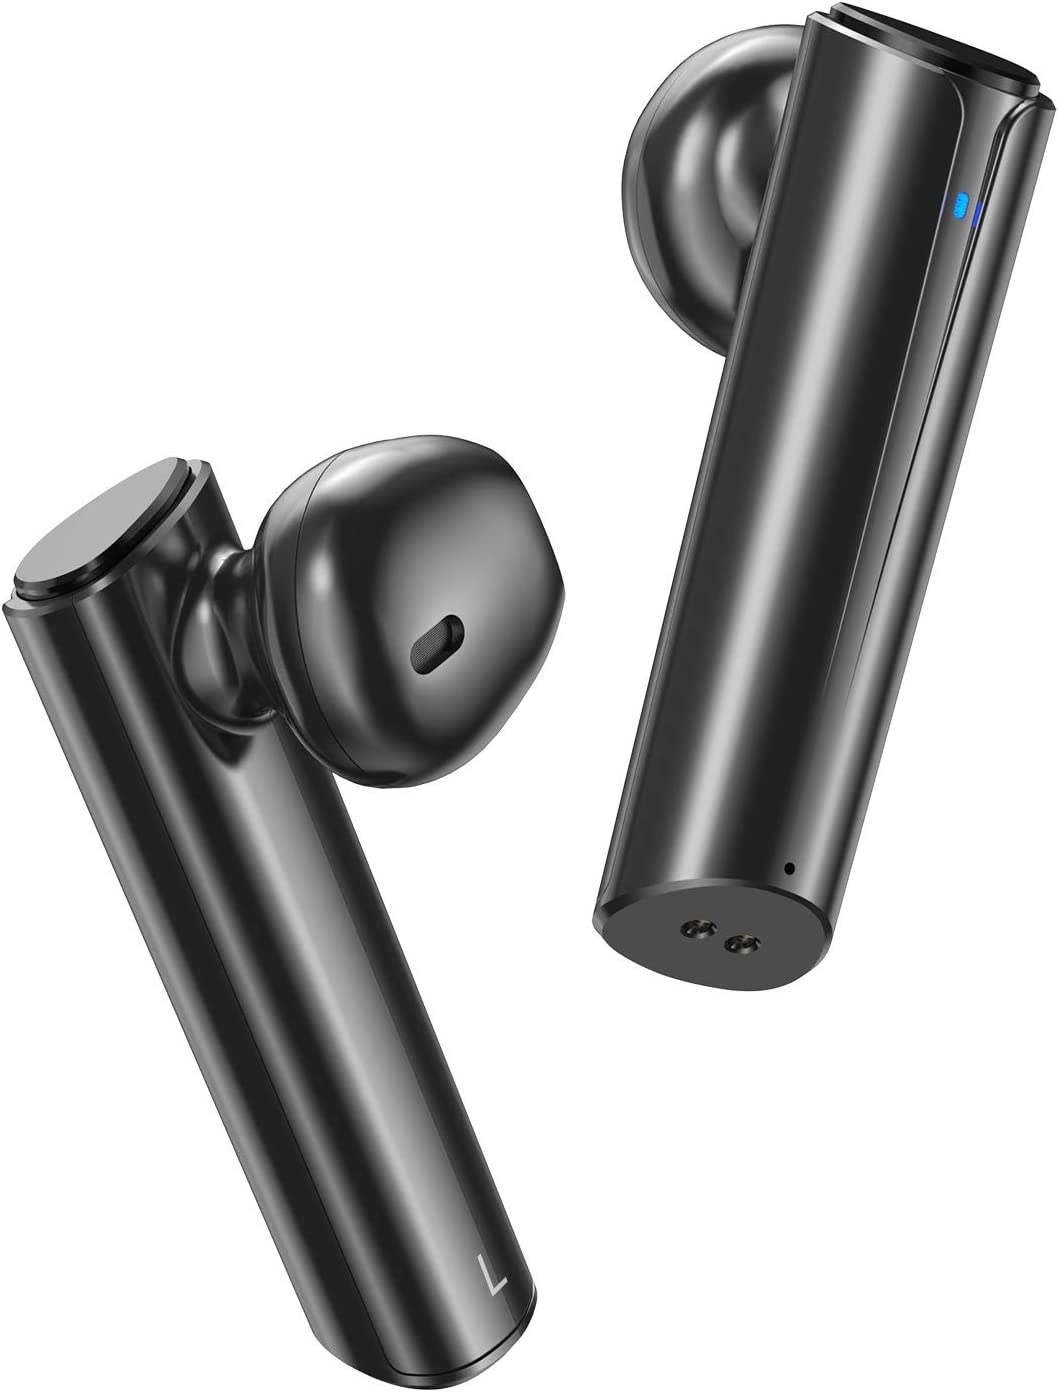 Wireless Earbuds Bluetooth Earbuds V5.0 Wireless Headphones, True Stereo Wireless Earphones with 24Hrs Playback, Comfy Wear Built-in Dual Mic, Hi-Fi Sound Bluetooth Headset w Portable Charging Case